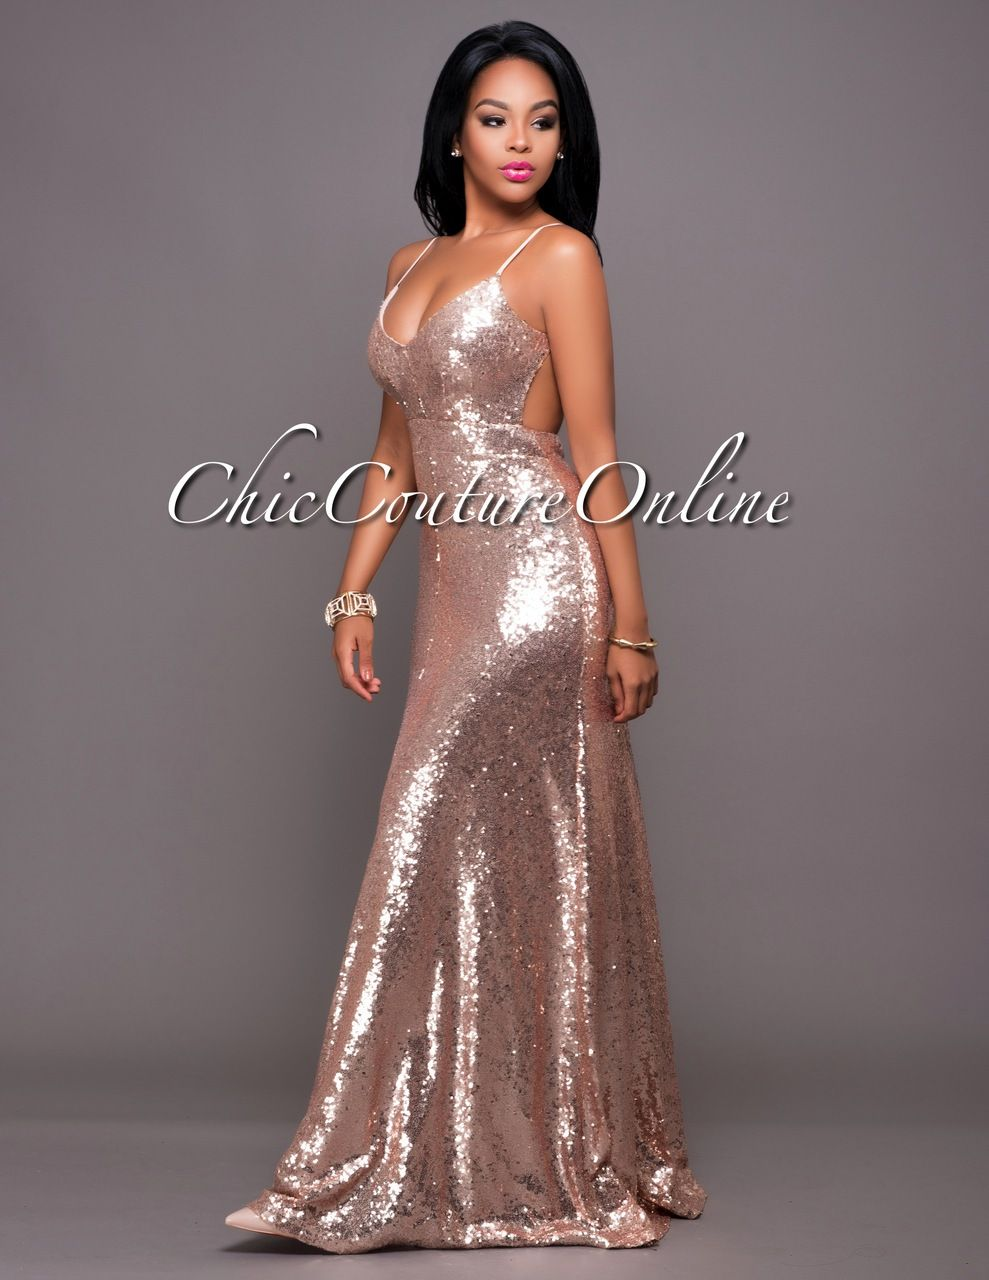 Chic couture online amor rose gold sequins open back gown